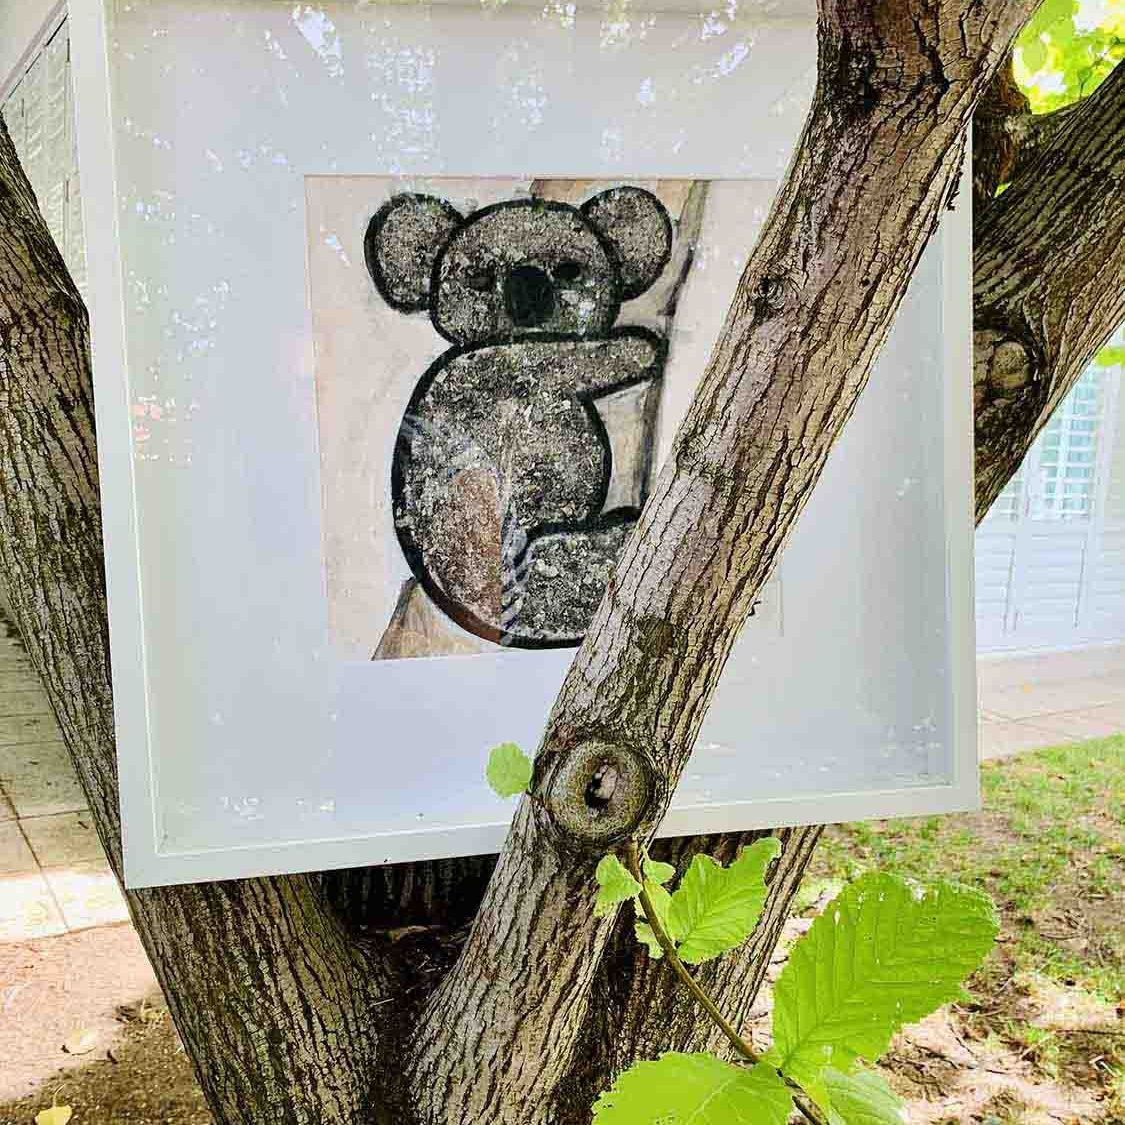 Koala In A Tree - Painting by Sarah Jane Adelaide Artist - Koala I